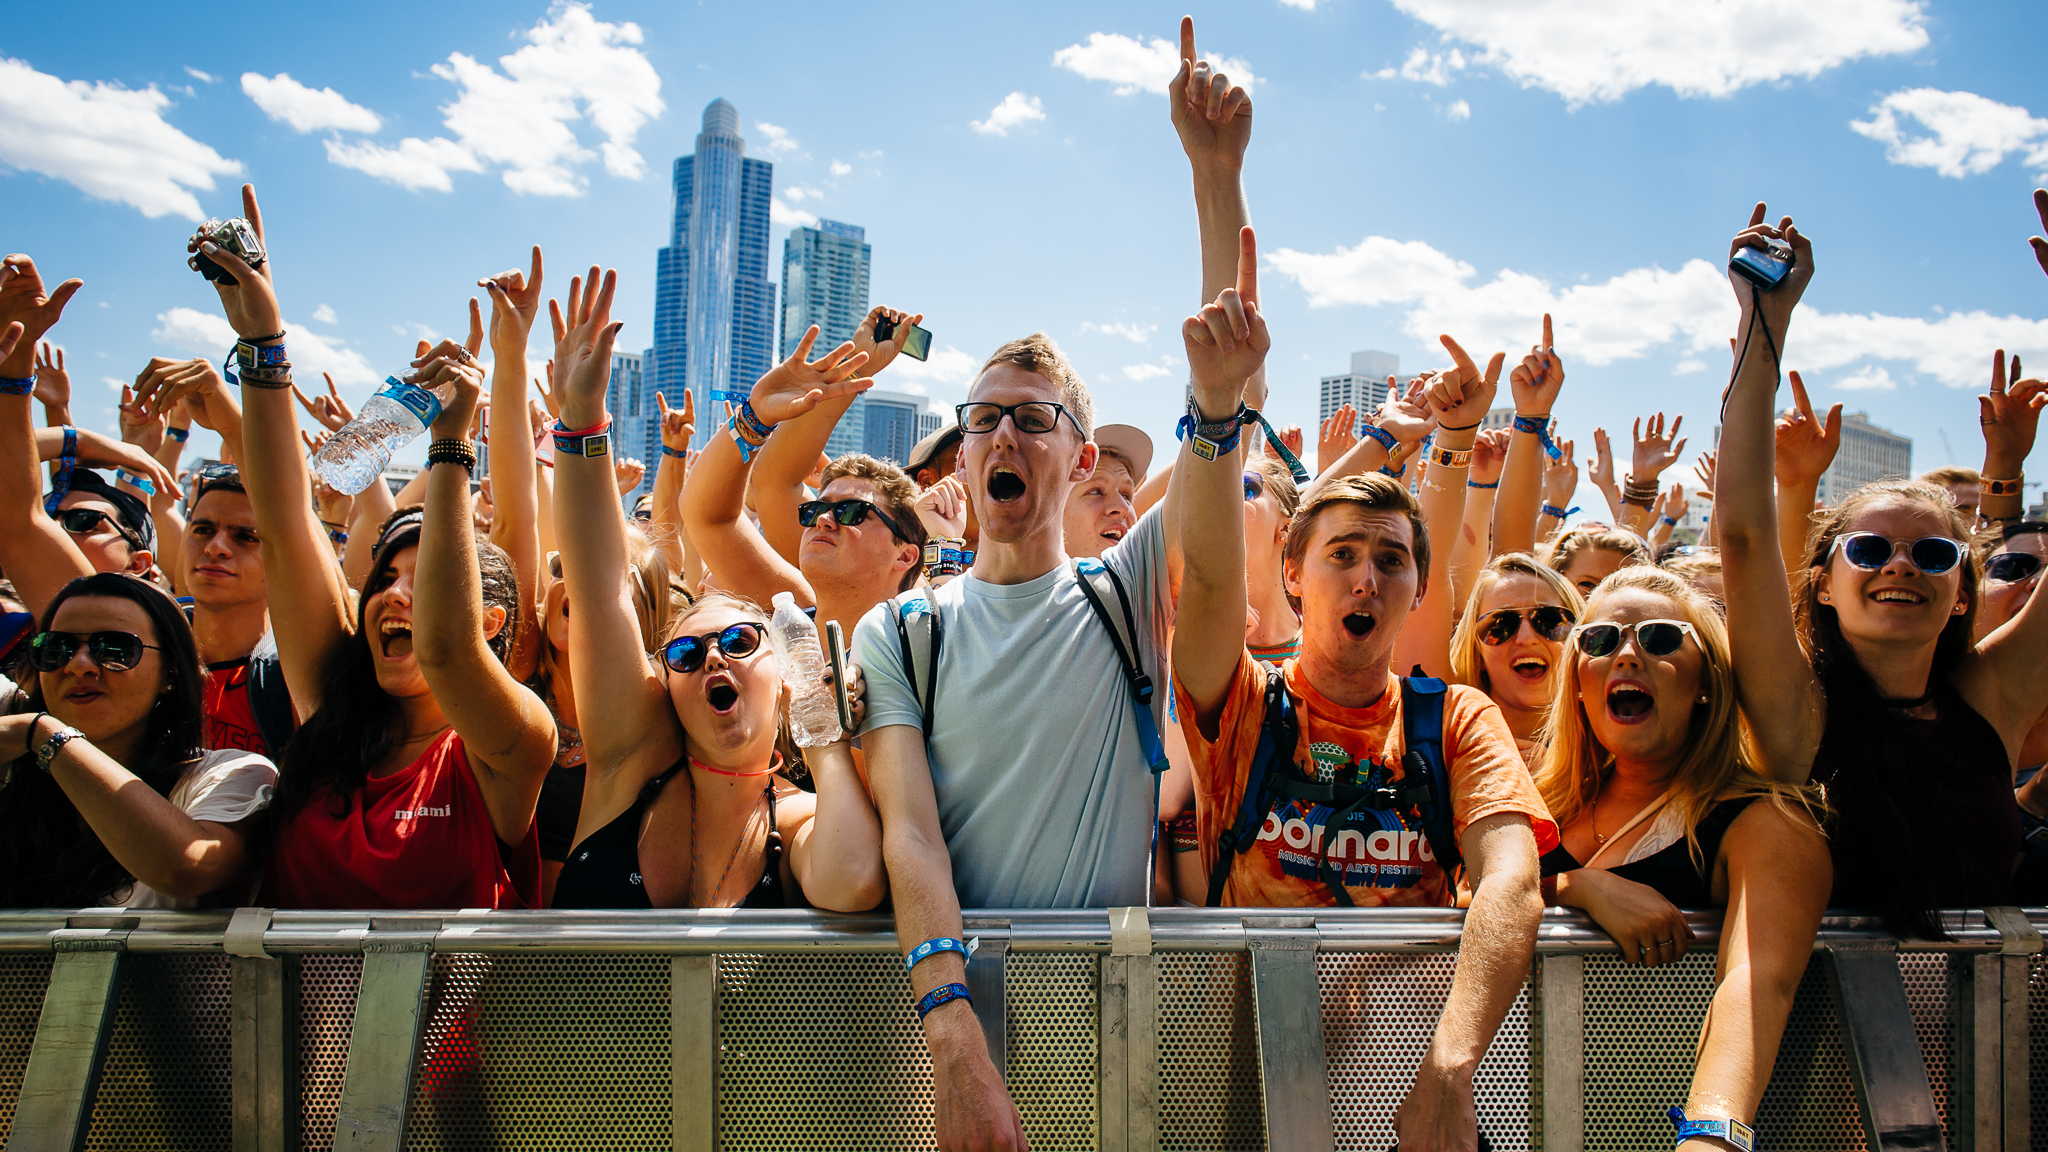 Lollapalooza summer music festival